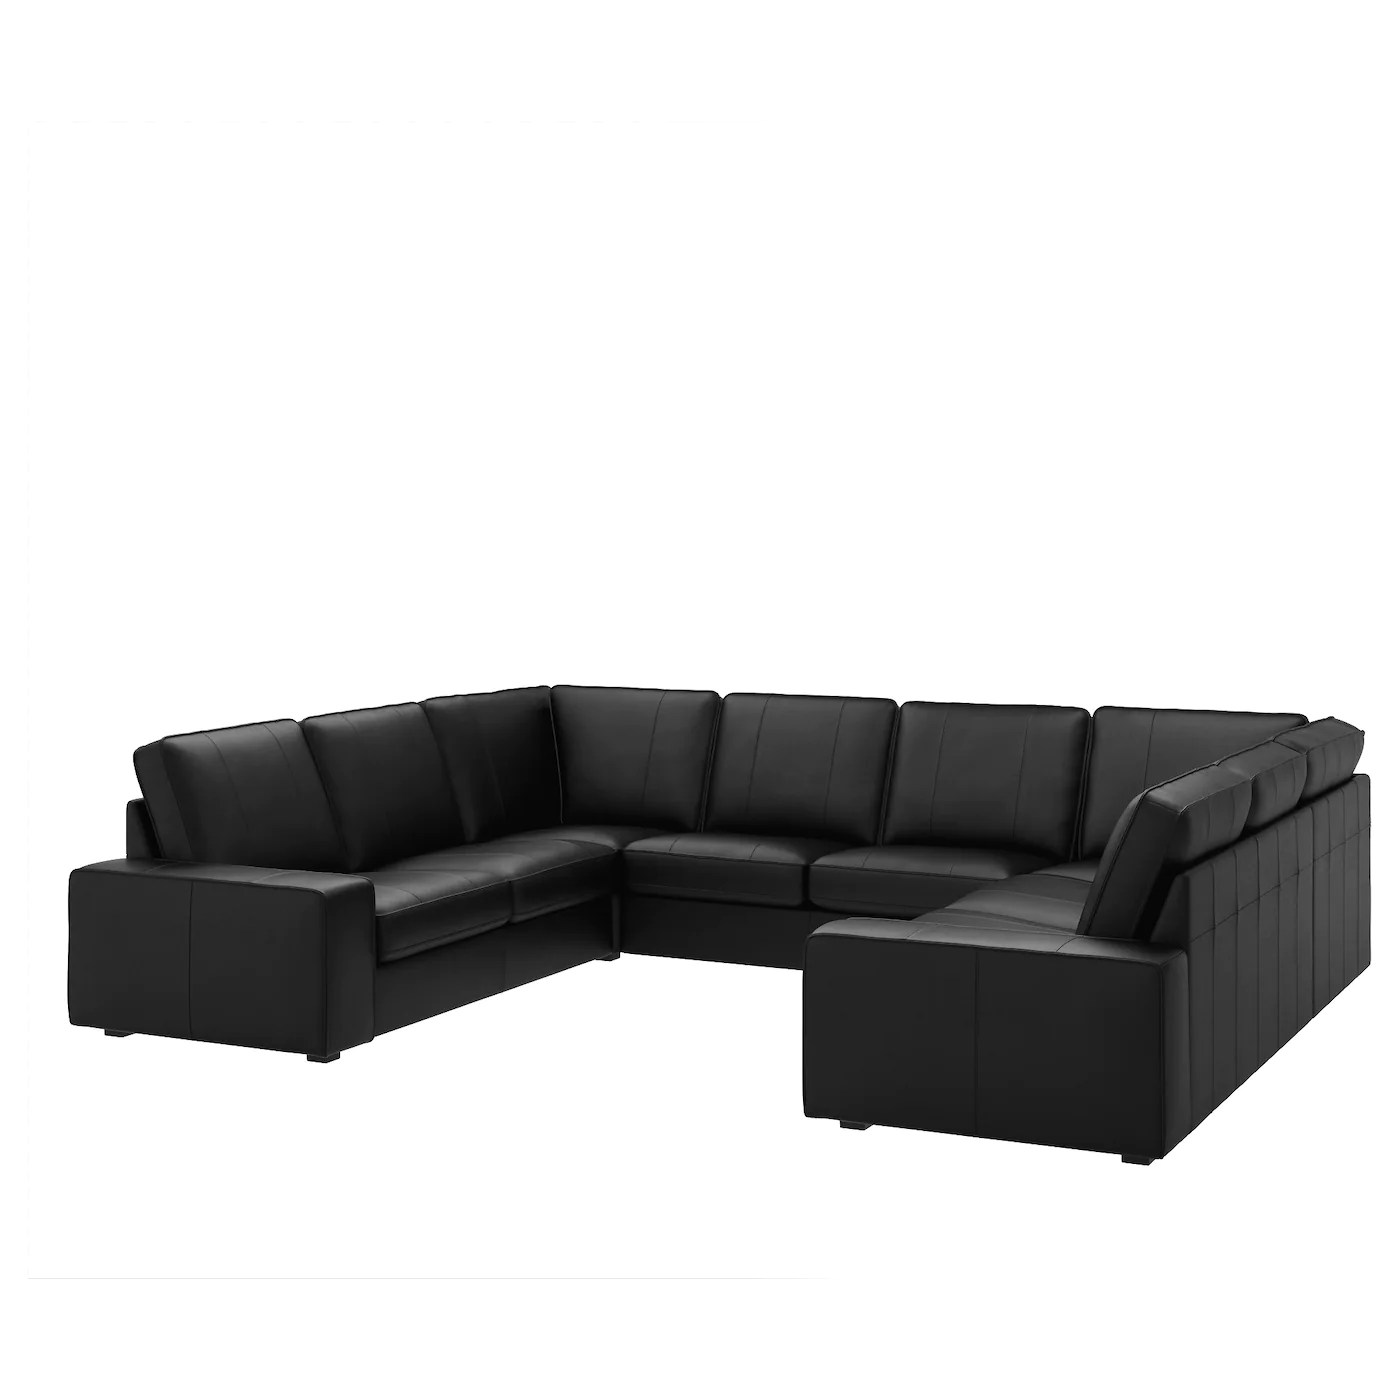 U Sofa Kivik U Shaped Sofa 6 Seat Grann Bomstad Black